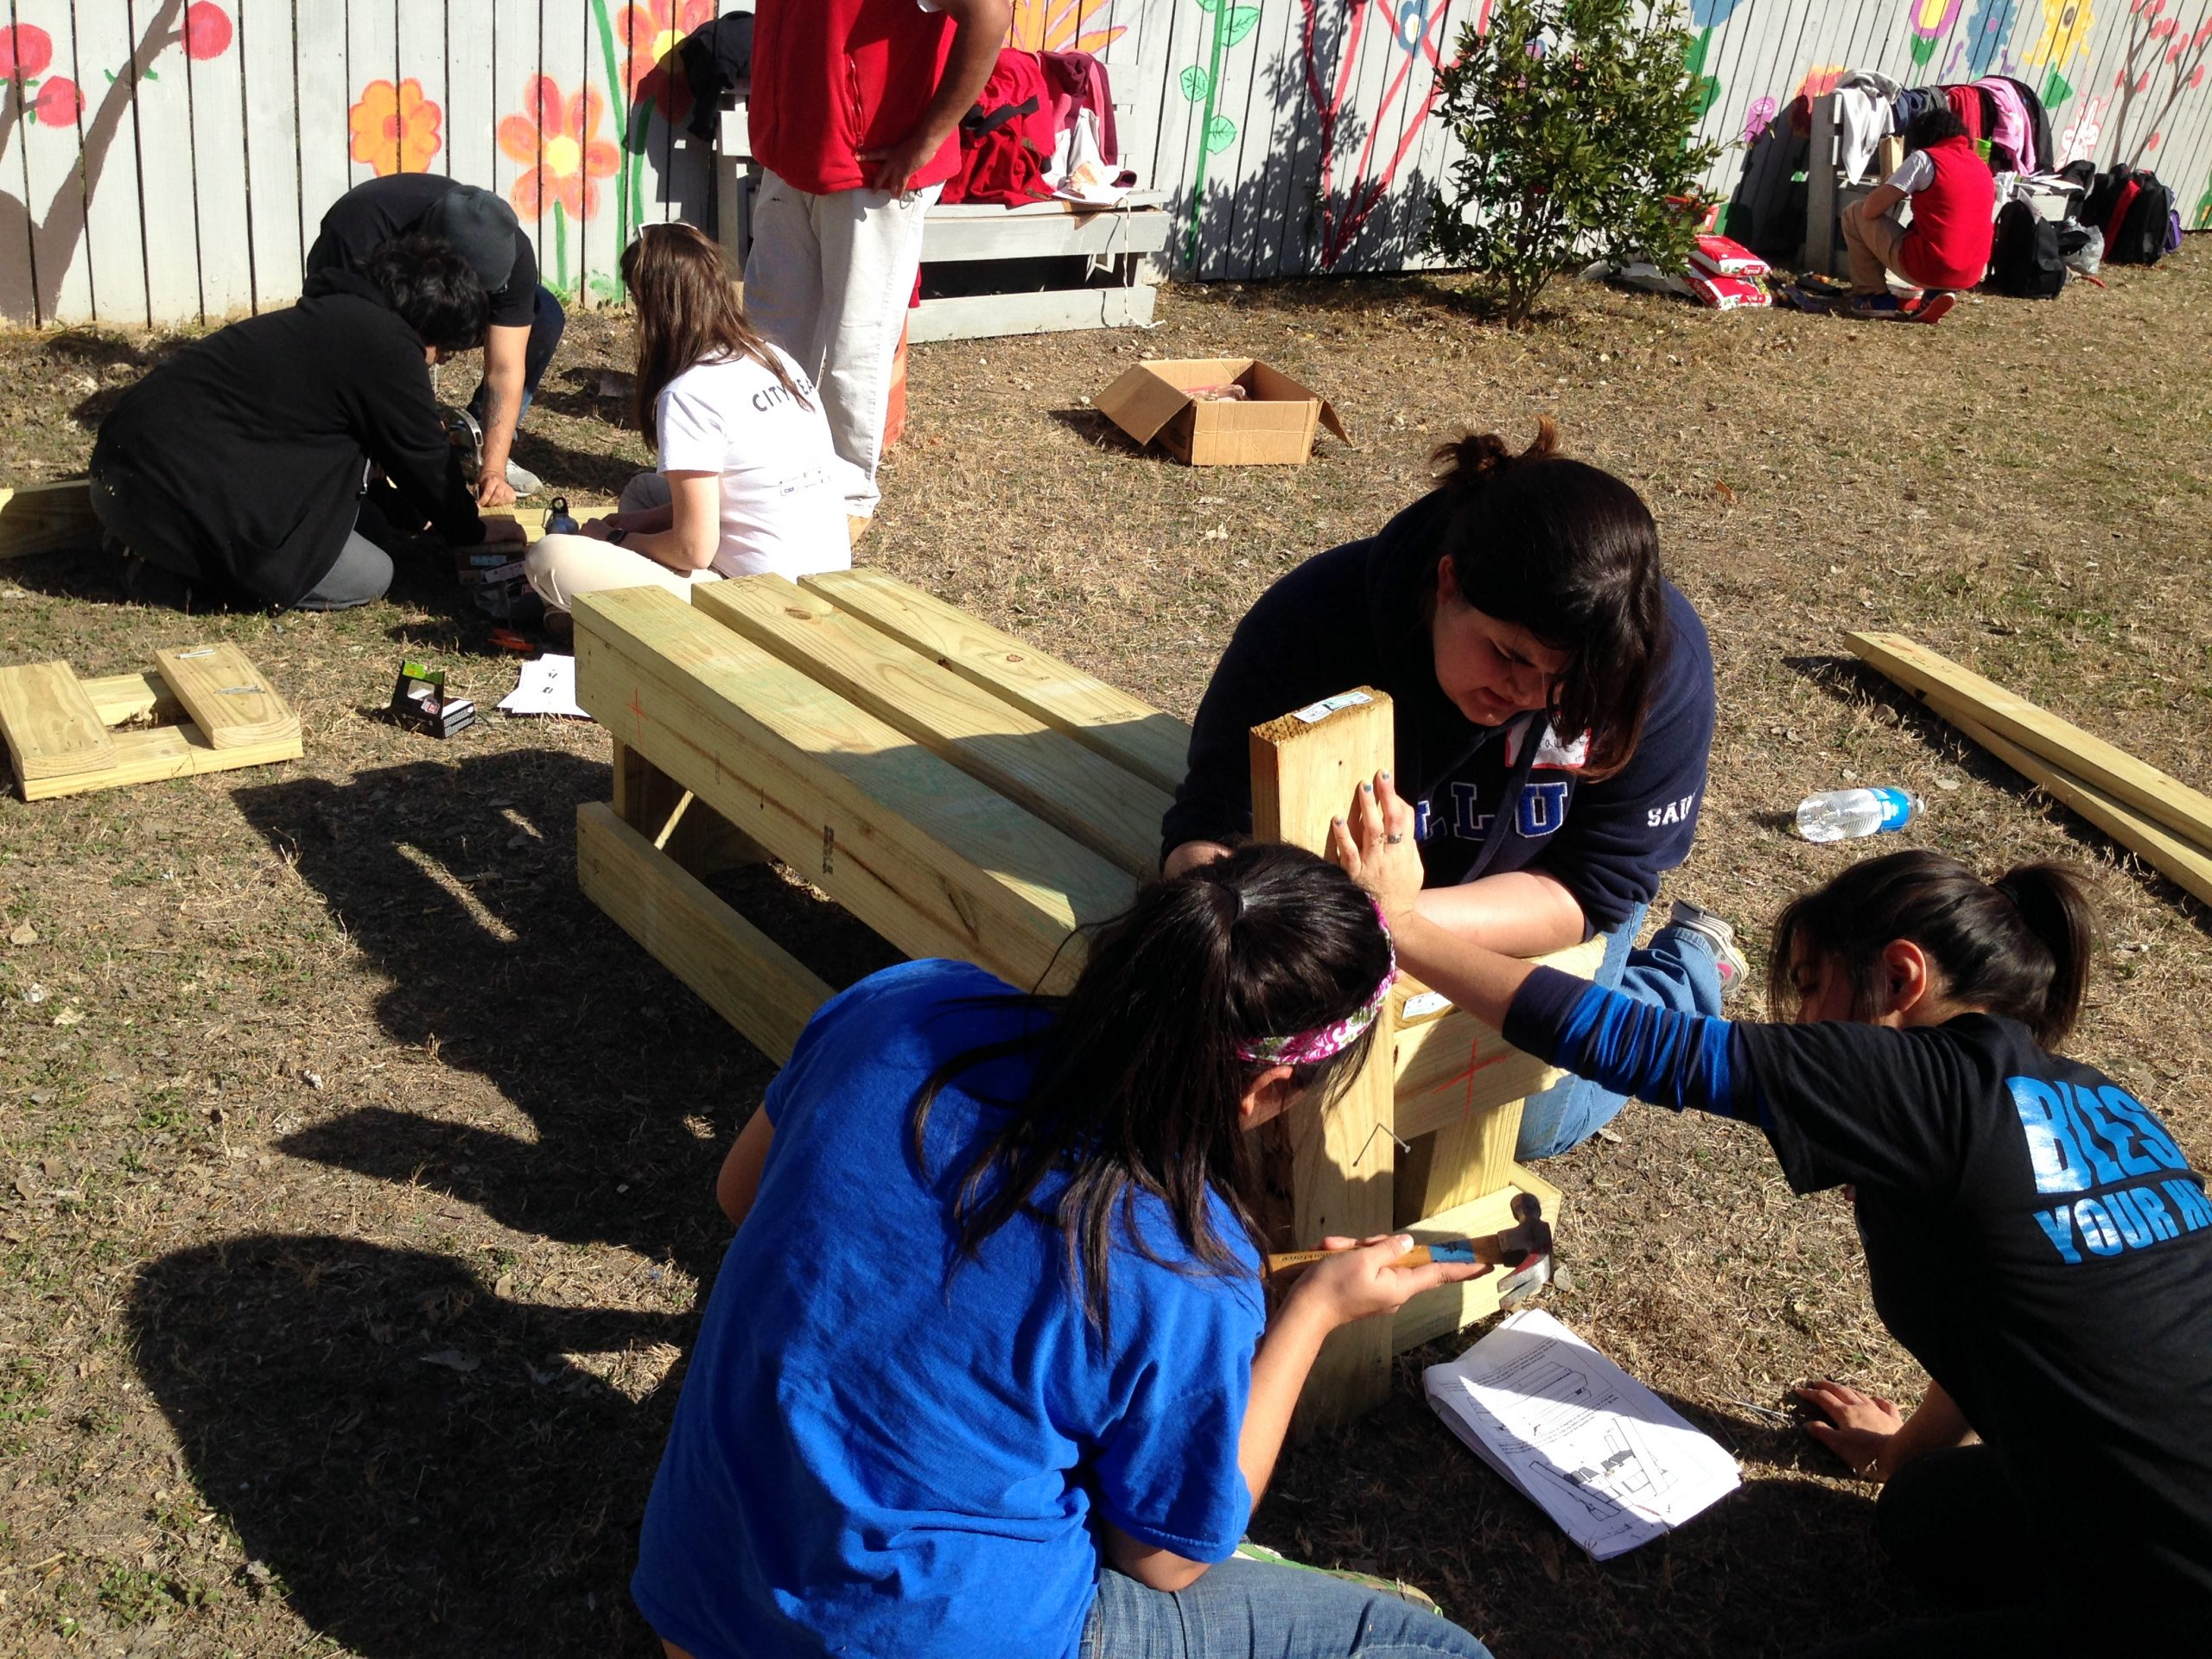 Our Lady of the Lake University students build benches for the community at the Adult Day Care Center. Photo by Karl Brooks.